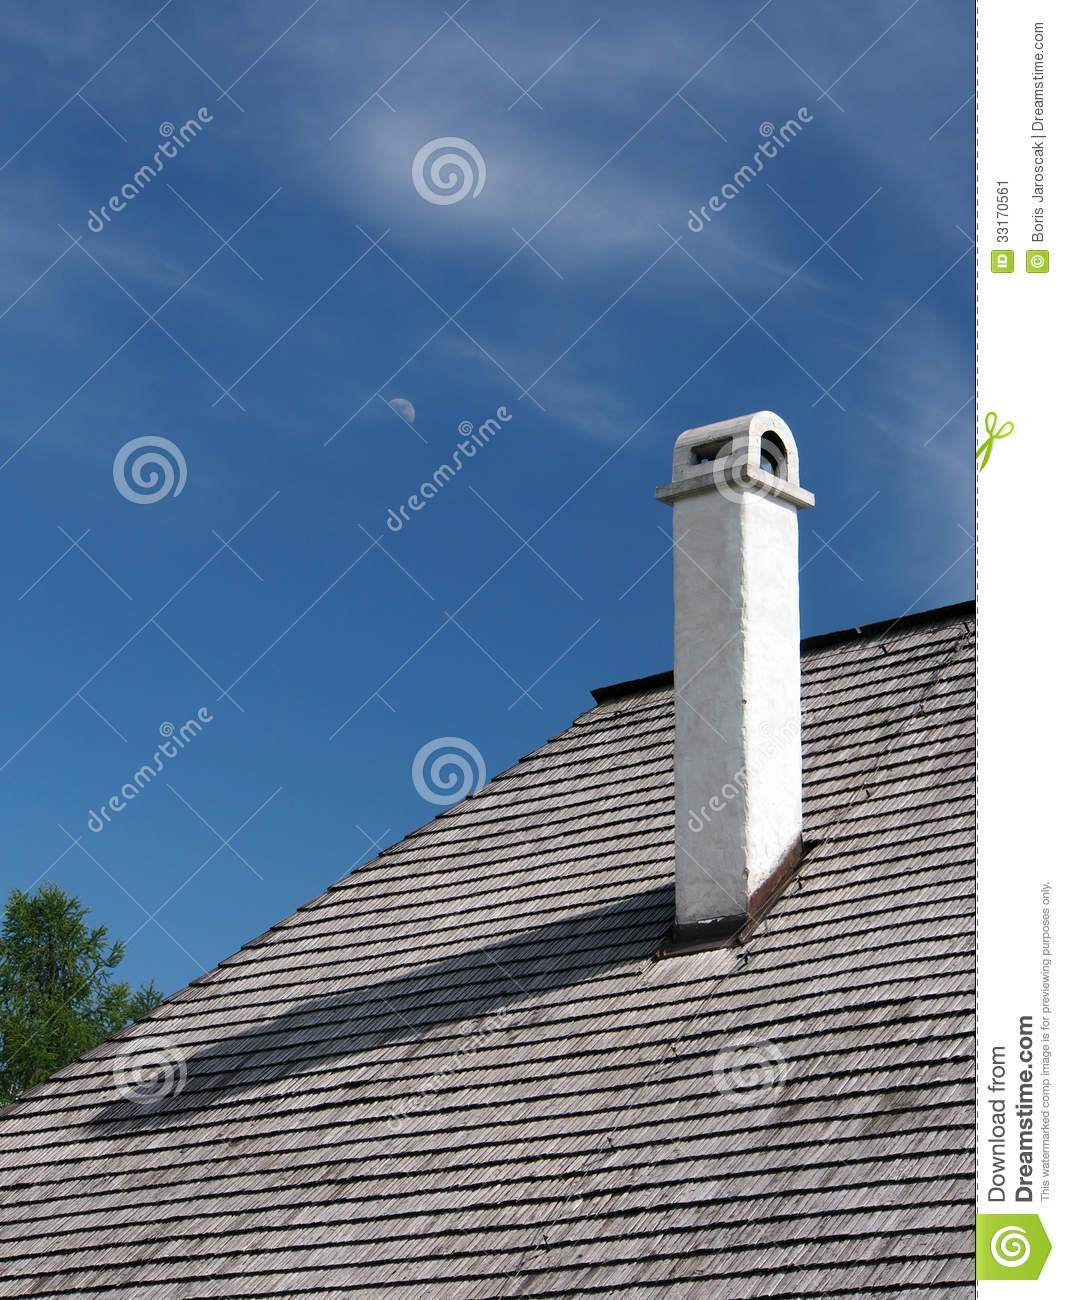 Shingle Roof With Chimney And Moon Stock Image Image